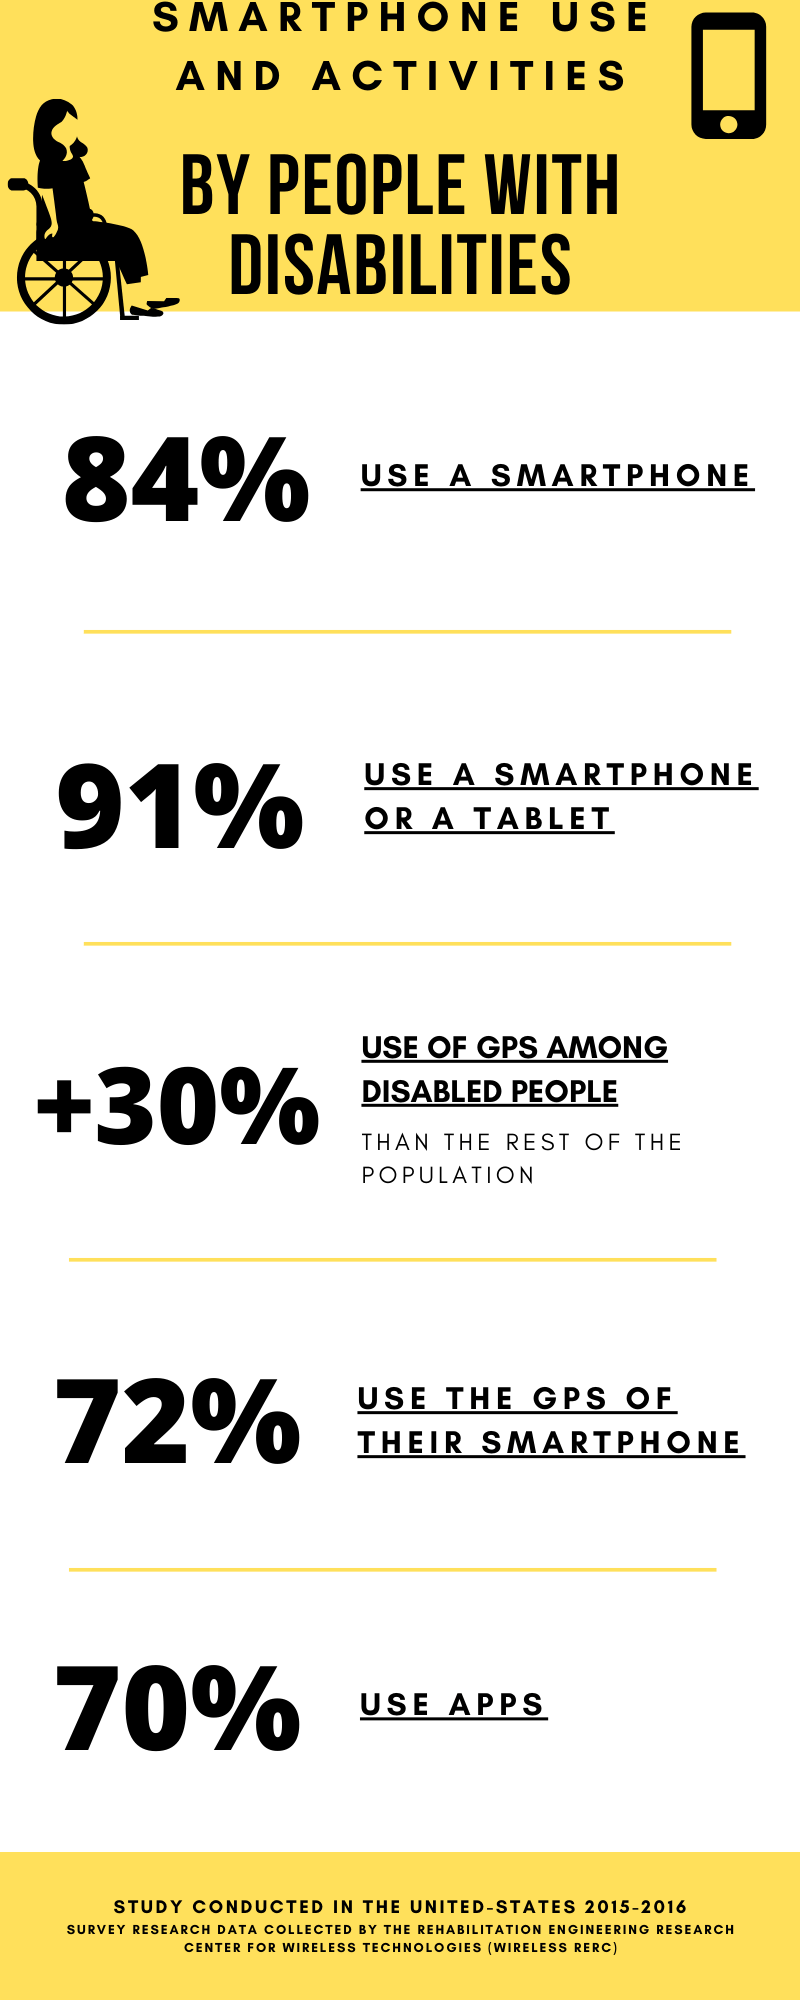 Infographic Smartphone use and activities disabled people